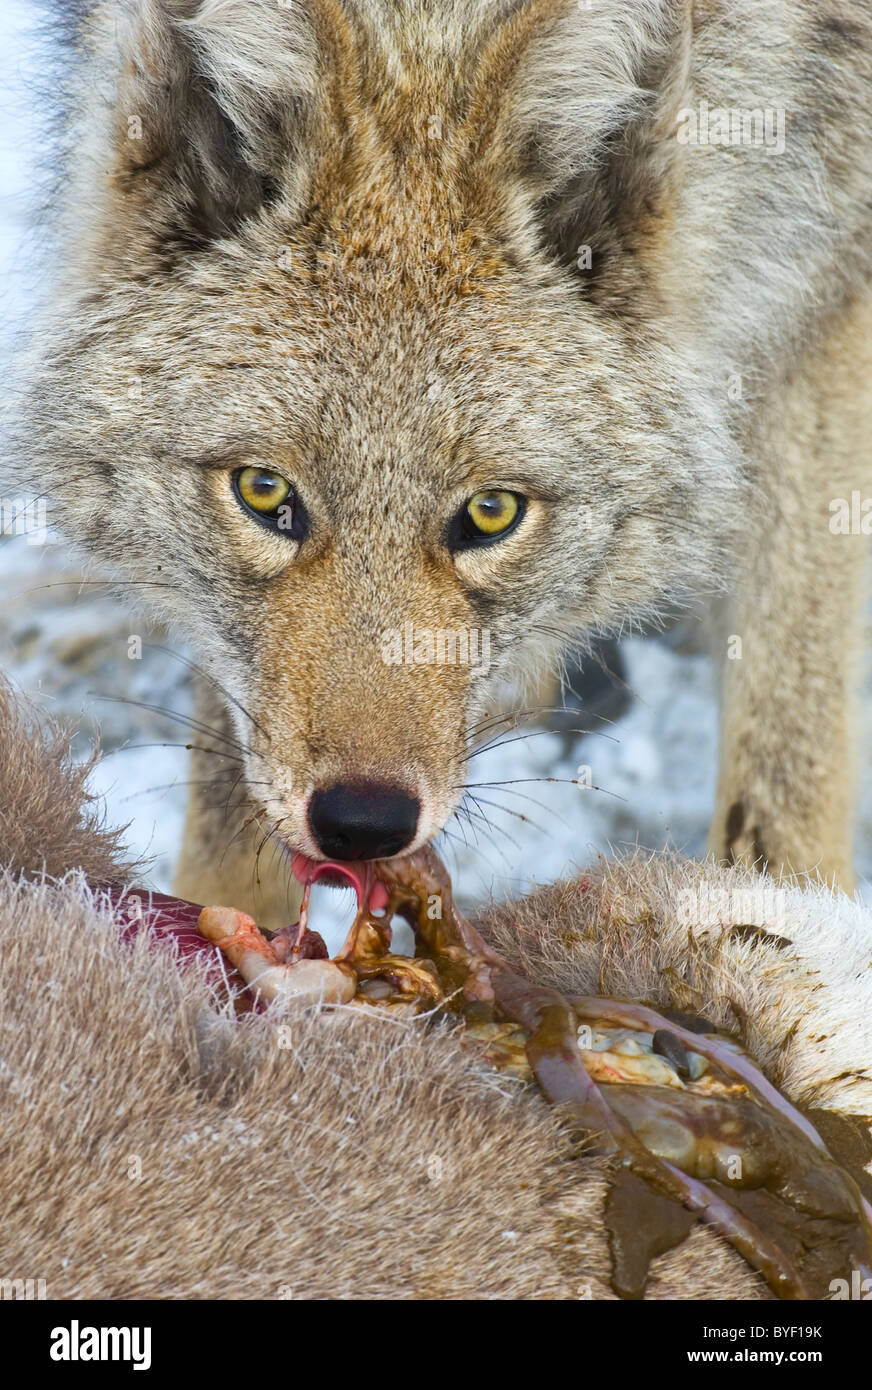 A close up image of an adult coyote feeding on the body of a dead baby Bighorn Sheep. - Stock Image